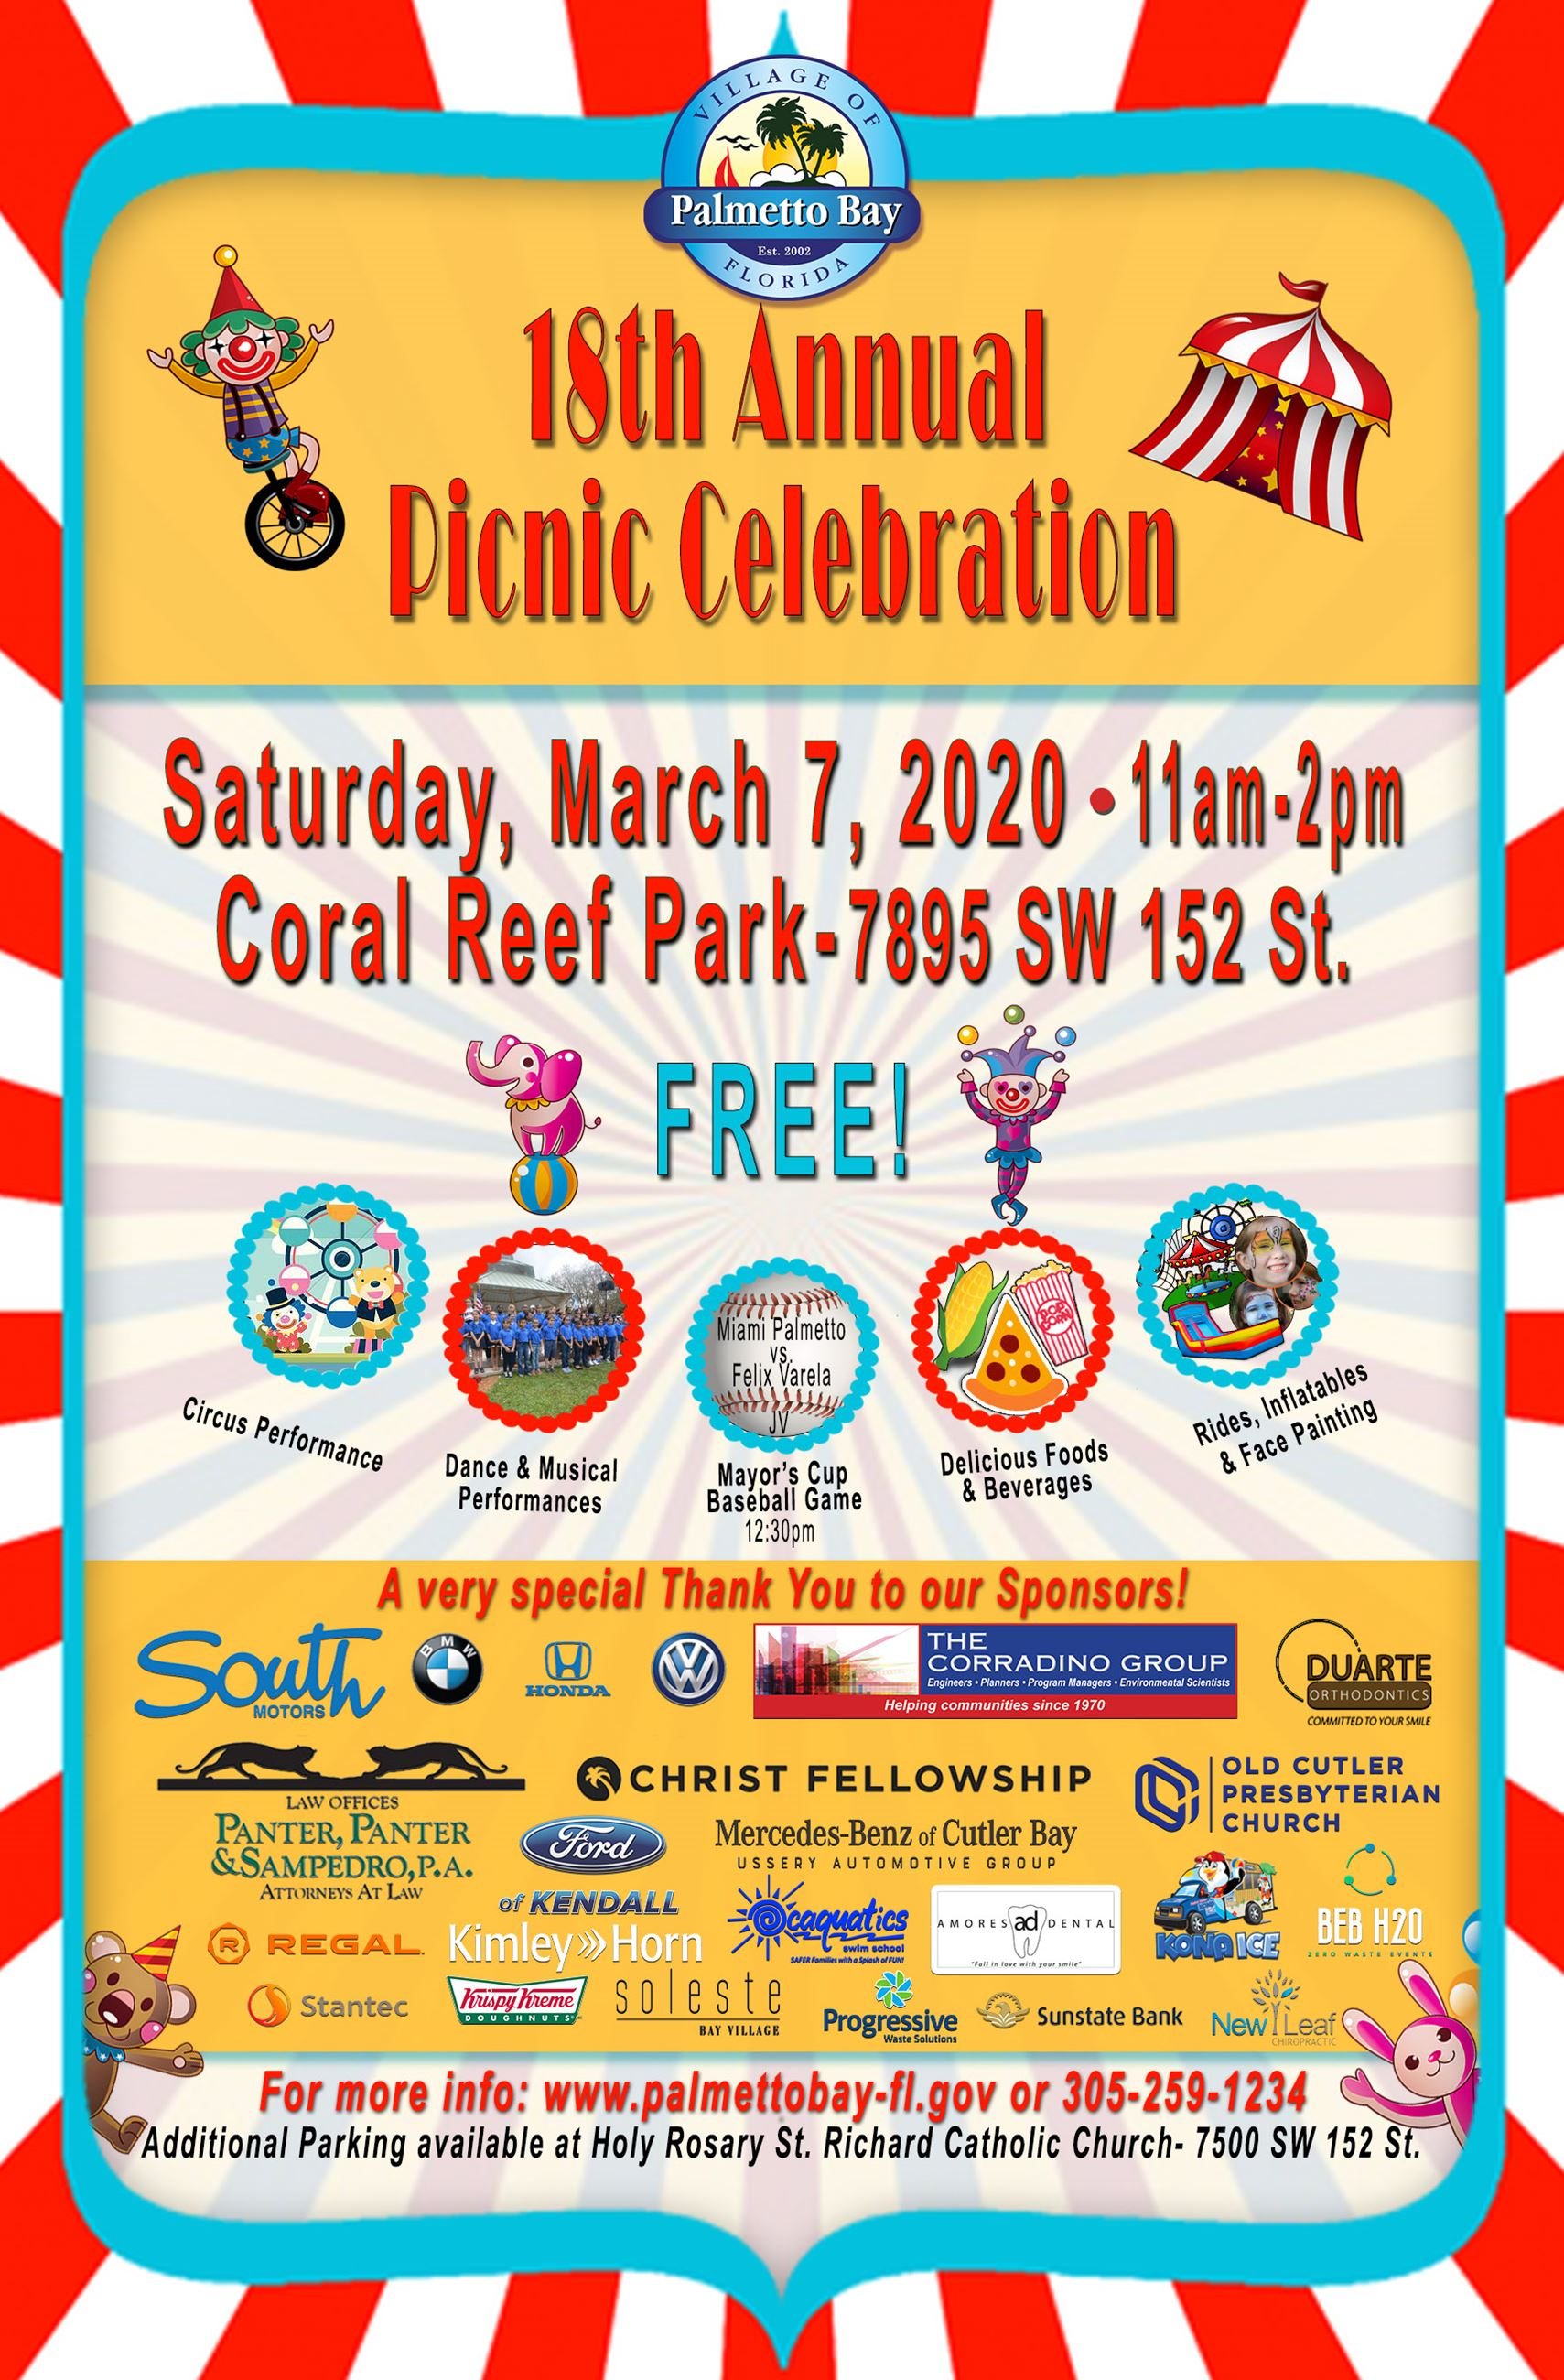 Annual Picnic, Saturday, March 7th at Coral Reef Park from 11a-2p